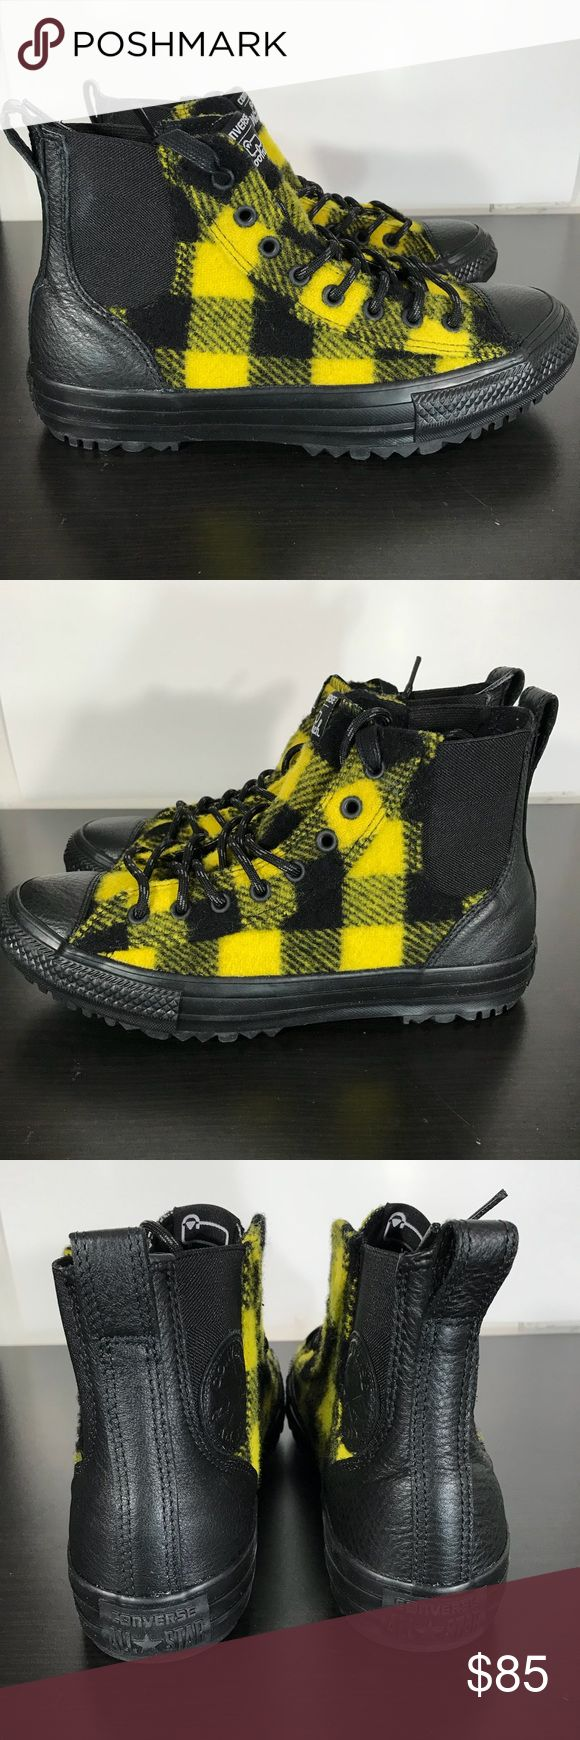 Converse x Woolrich Women 8.5 Black/Yellow 553385C Hello Everybody!! 